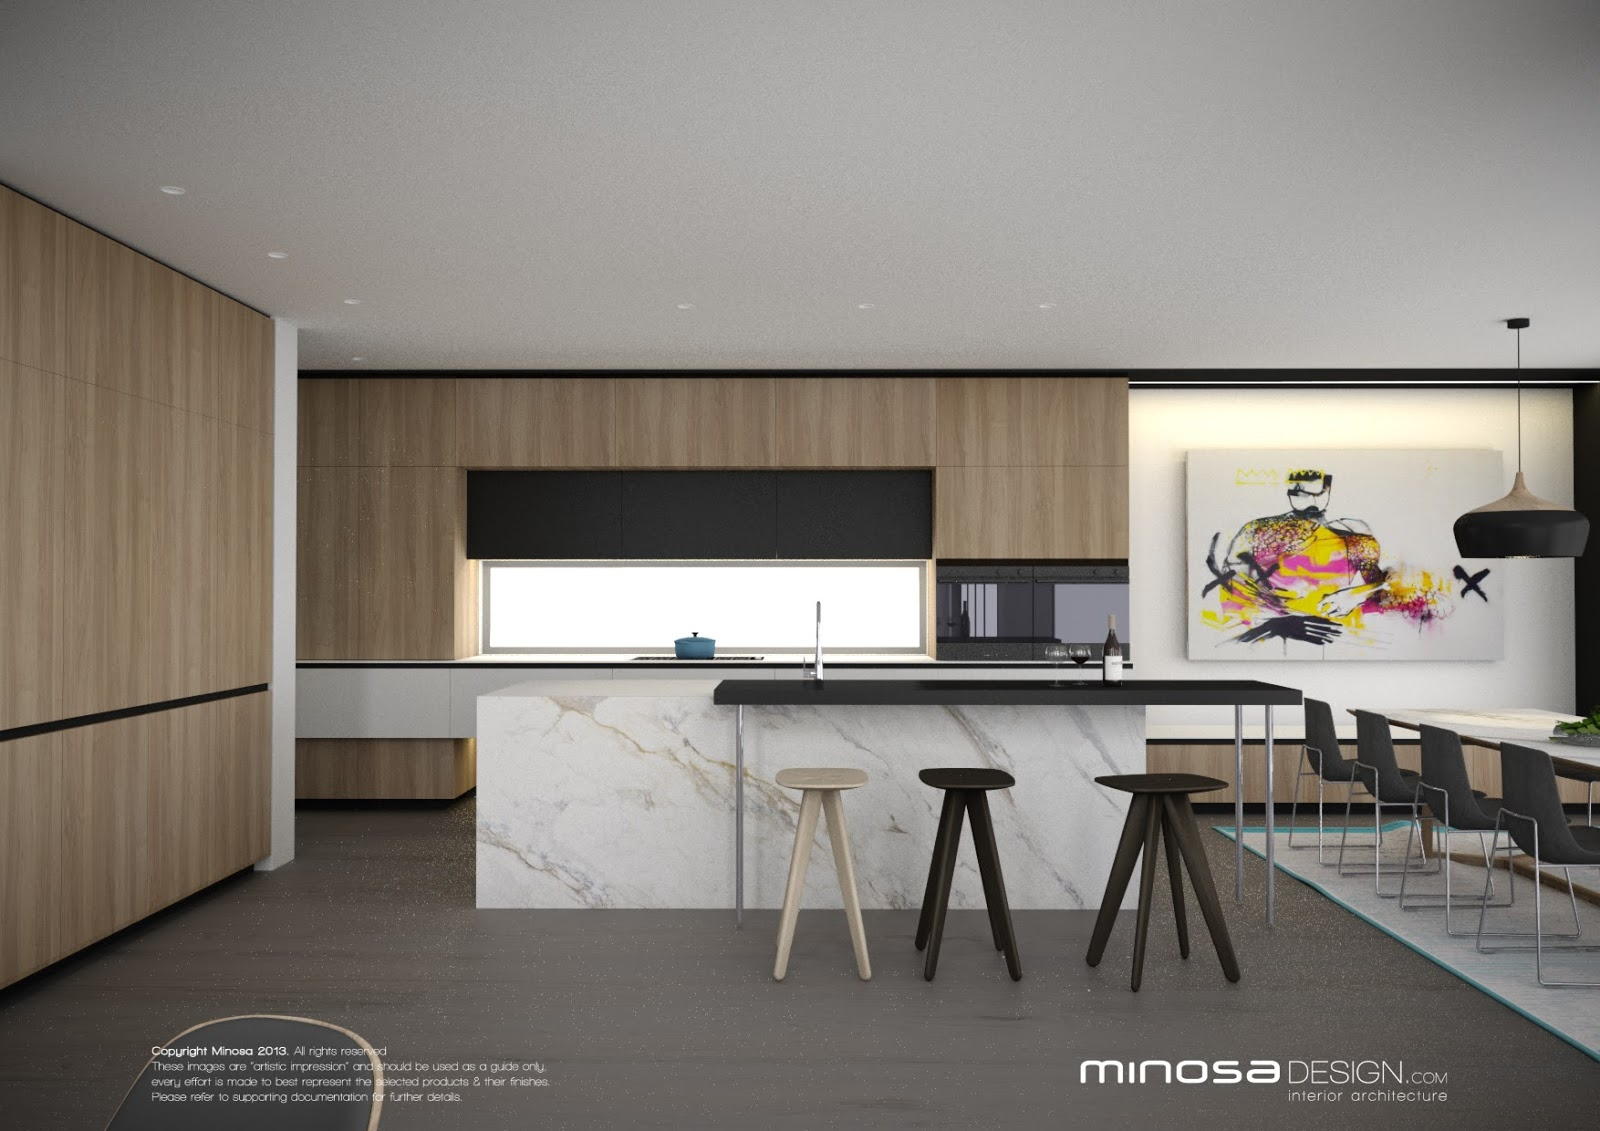 Modern Living Room With Kitchen Interior Design Minosa The Modern Living Room Kitchen Lounge Dine